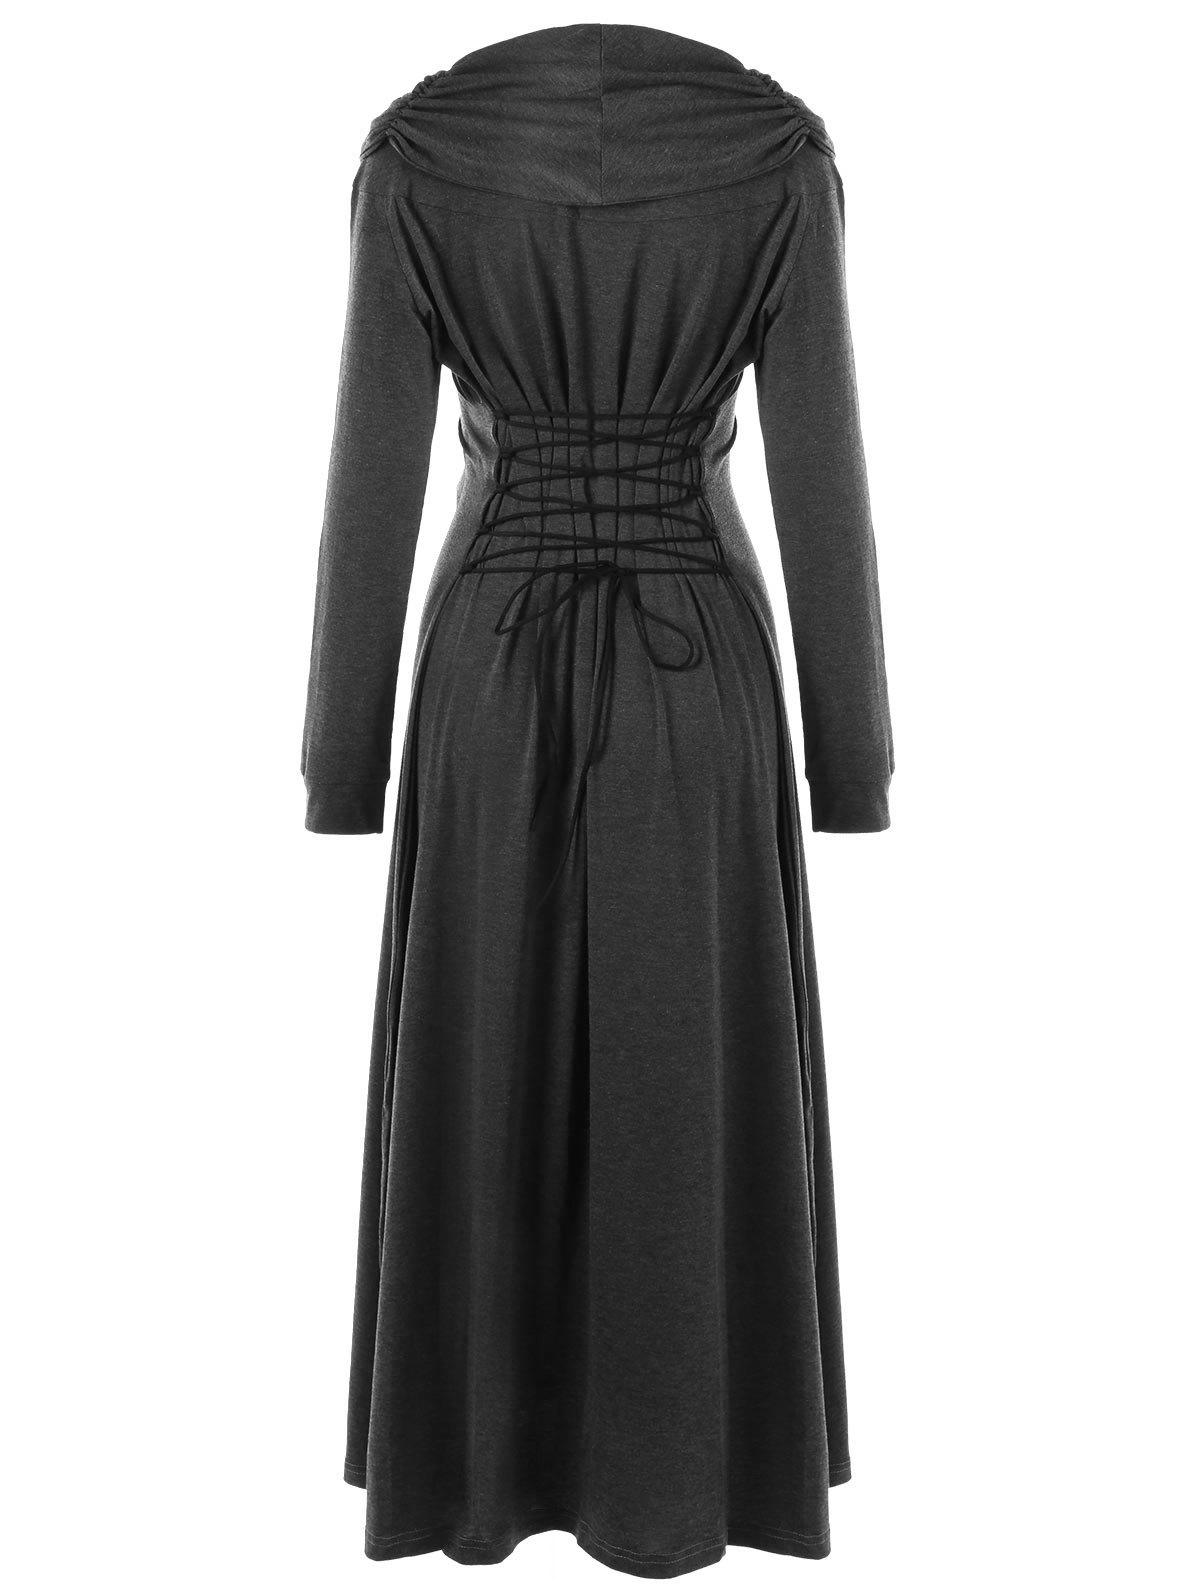 Lace Insert Lace Up Maxi Dress - DEEP GRAY XL